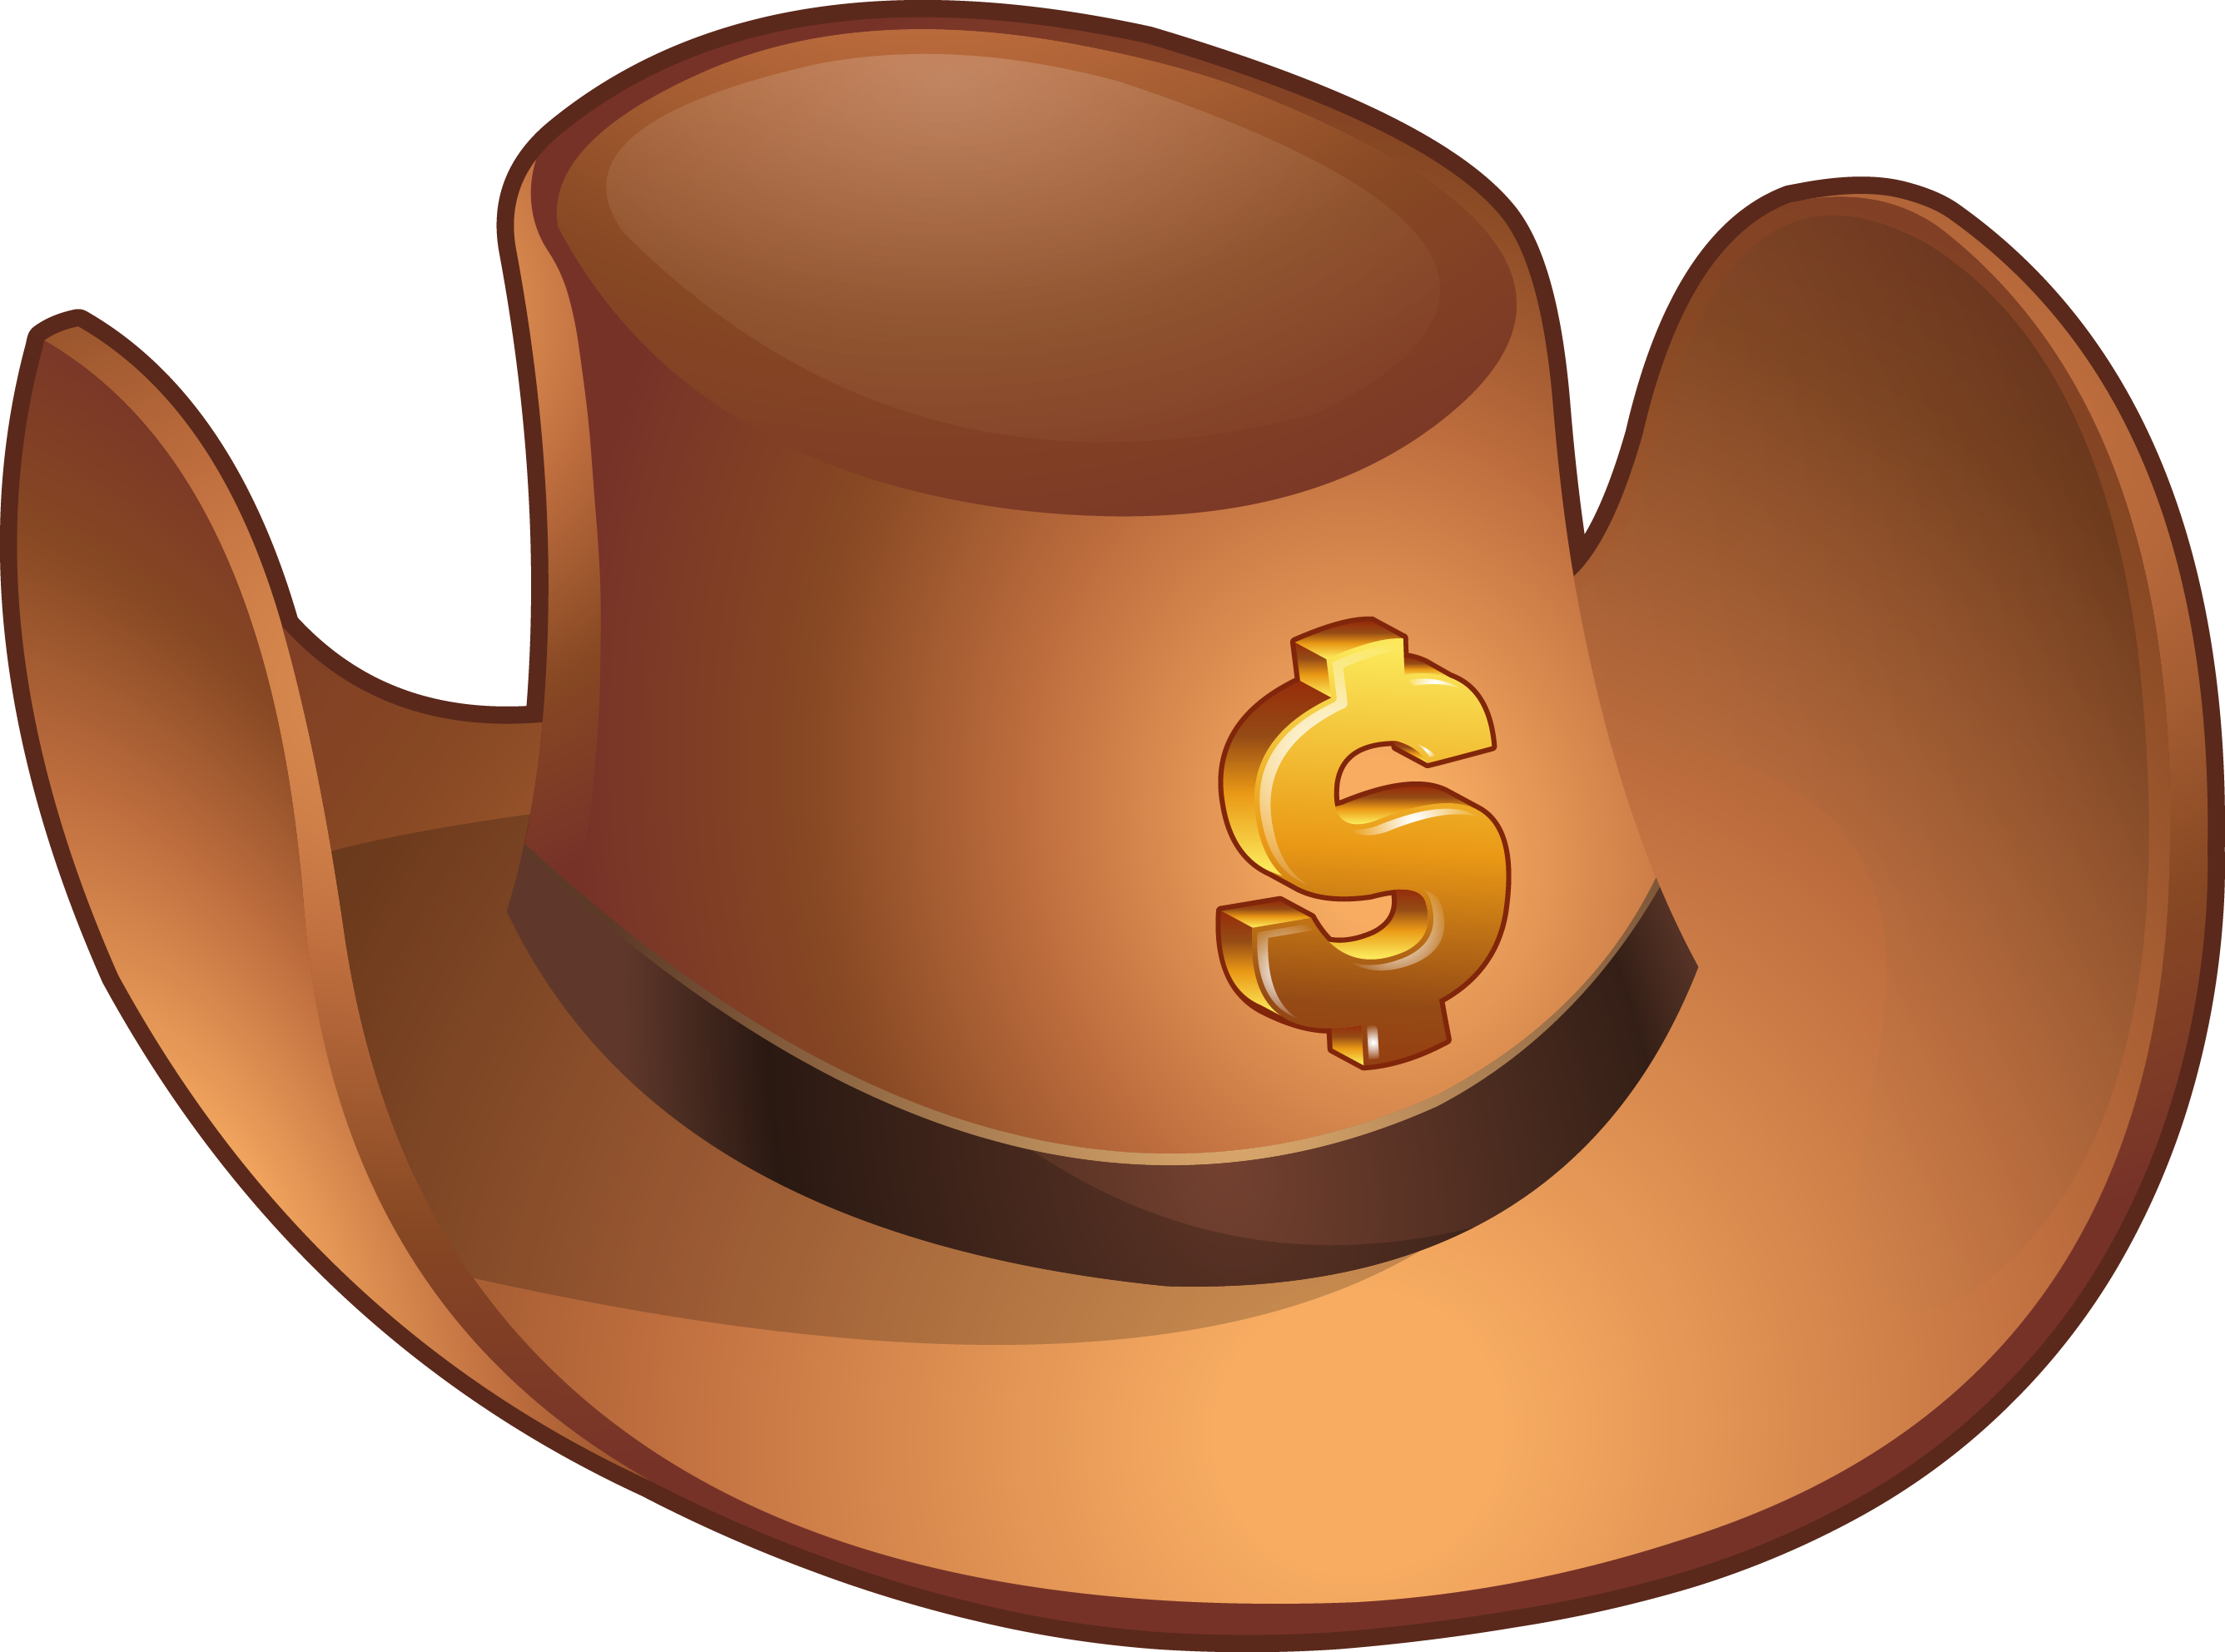 jpg free download Body clipart cowboy. Hat brown thing free